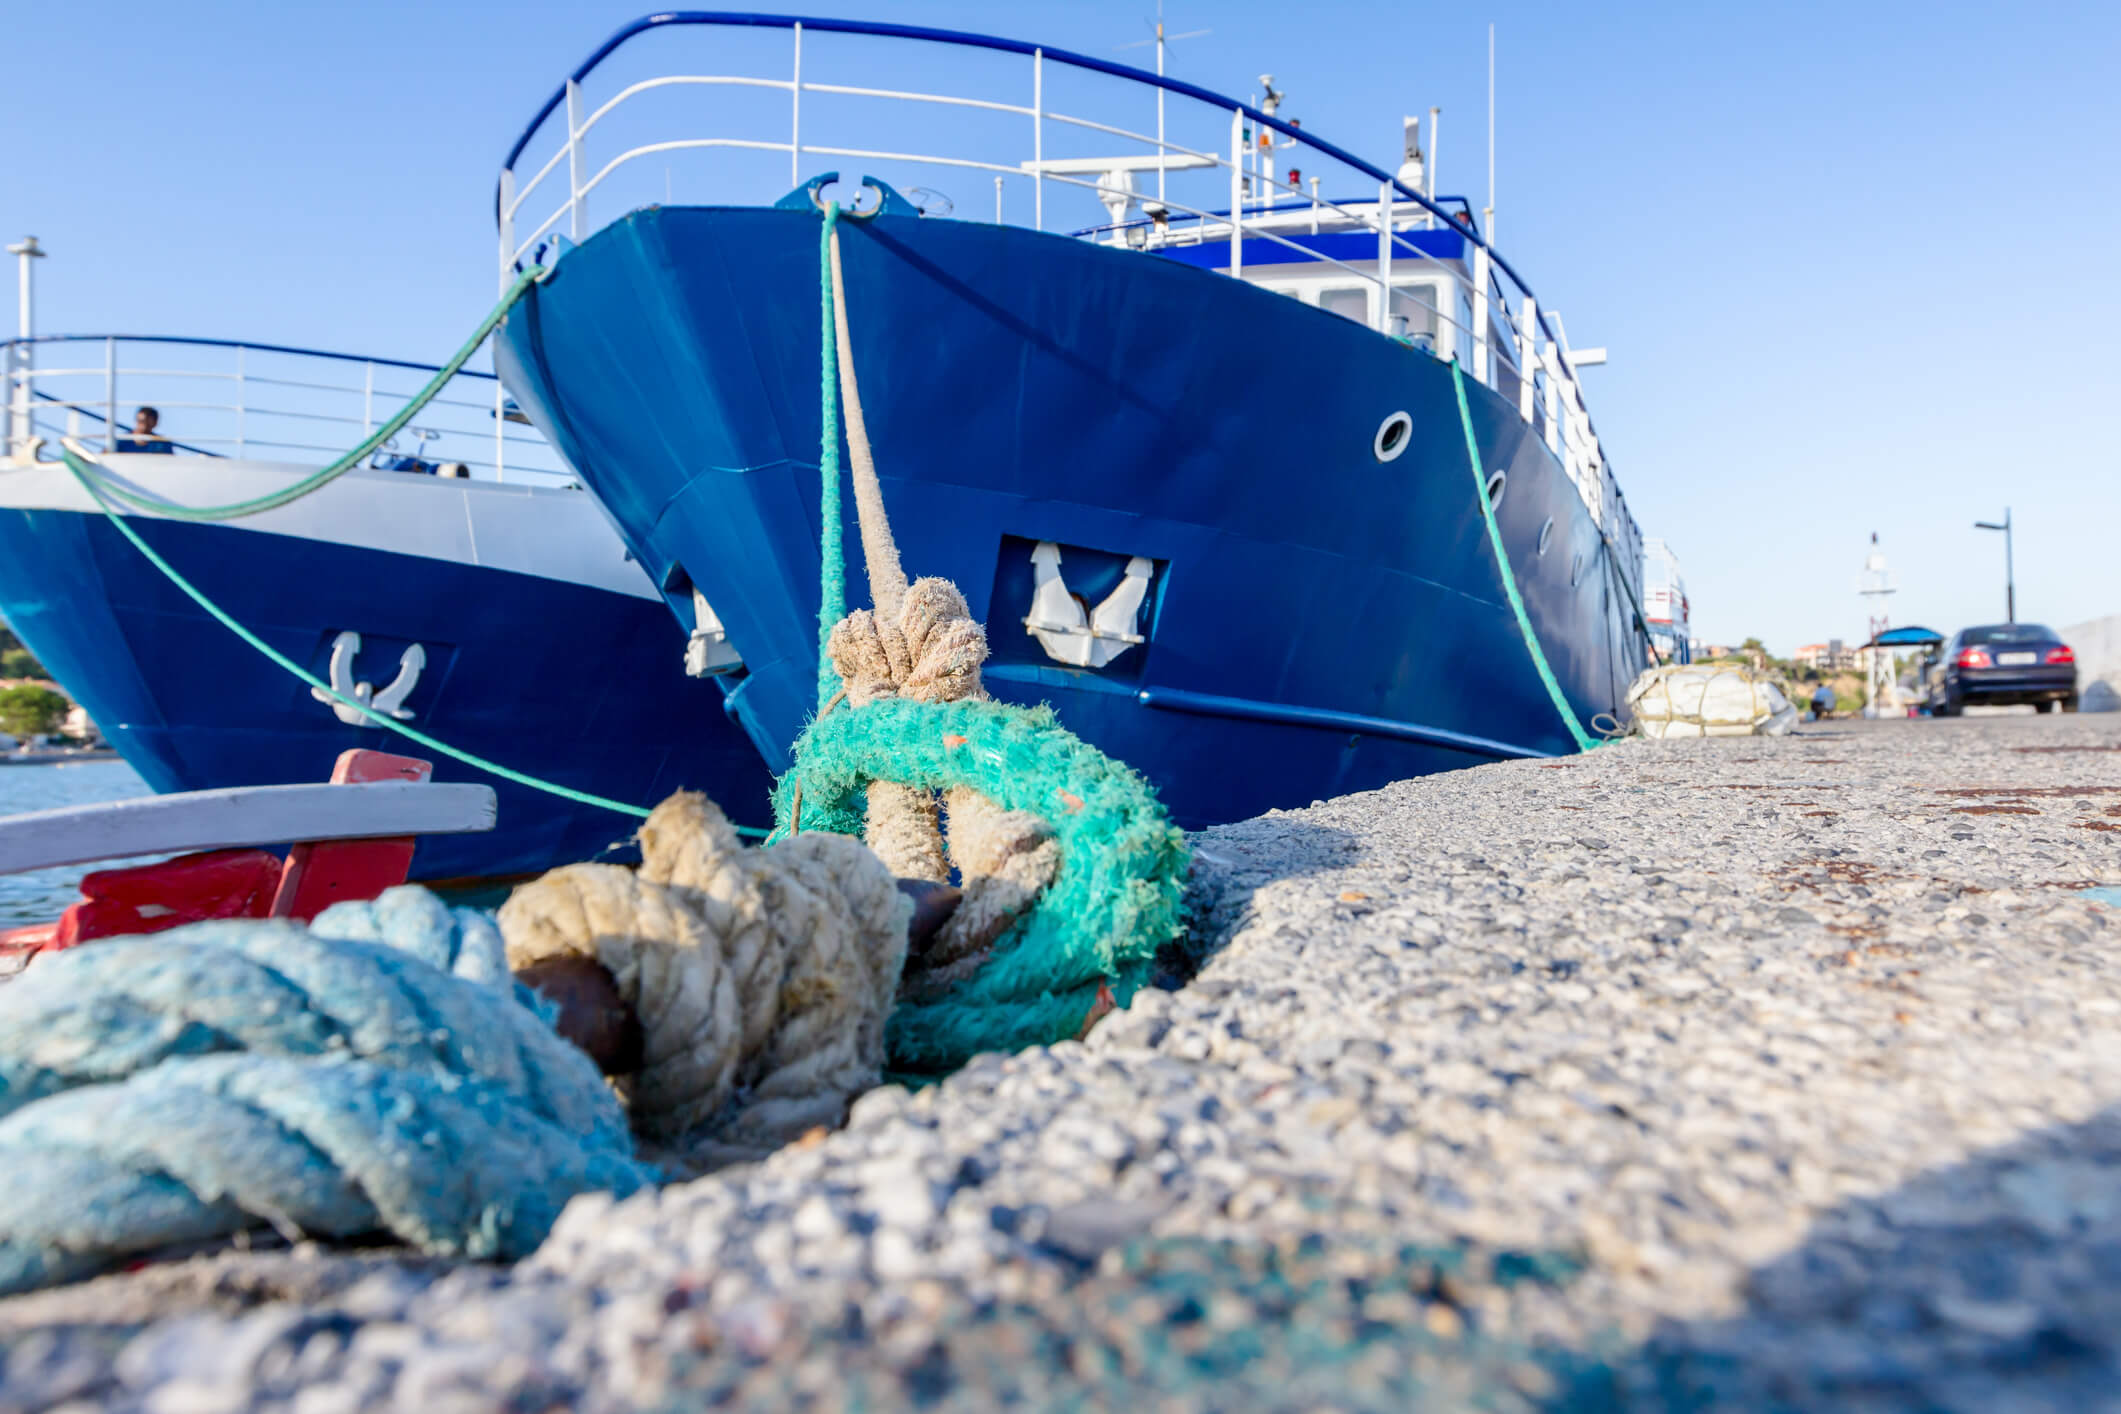 Two big fishing boats are tied up with rope for the dock, marina.